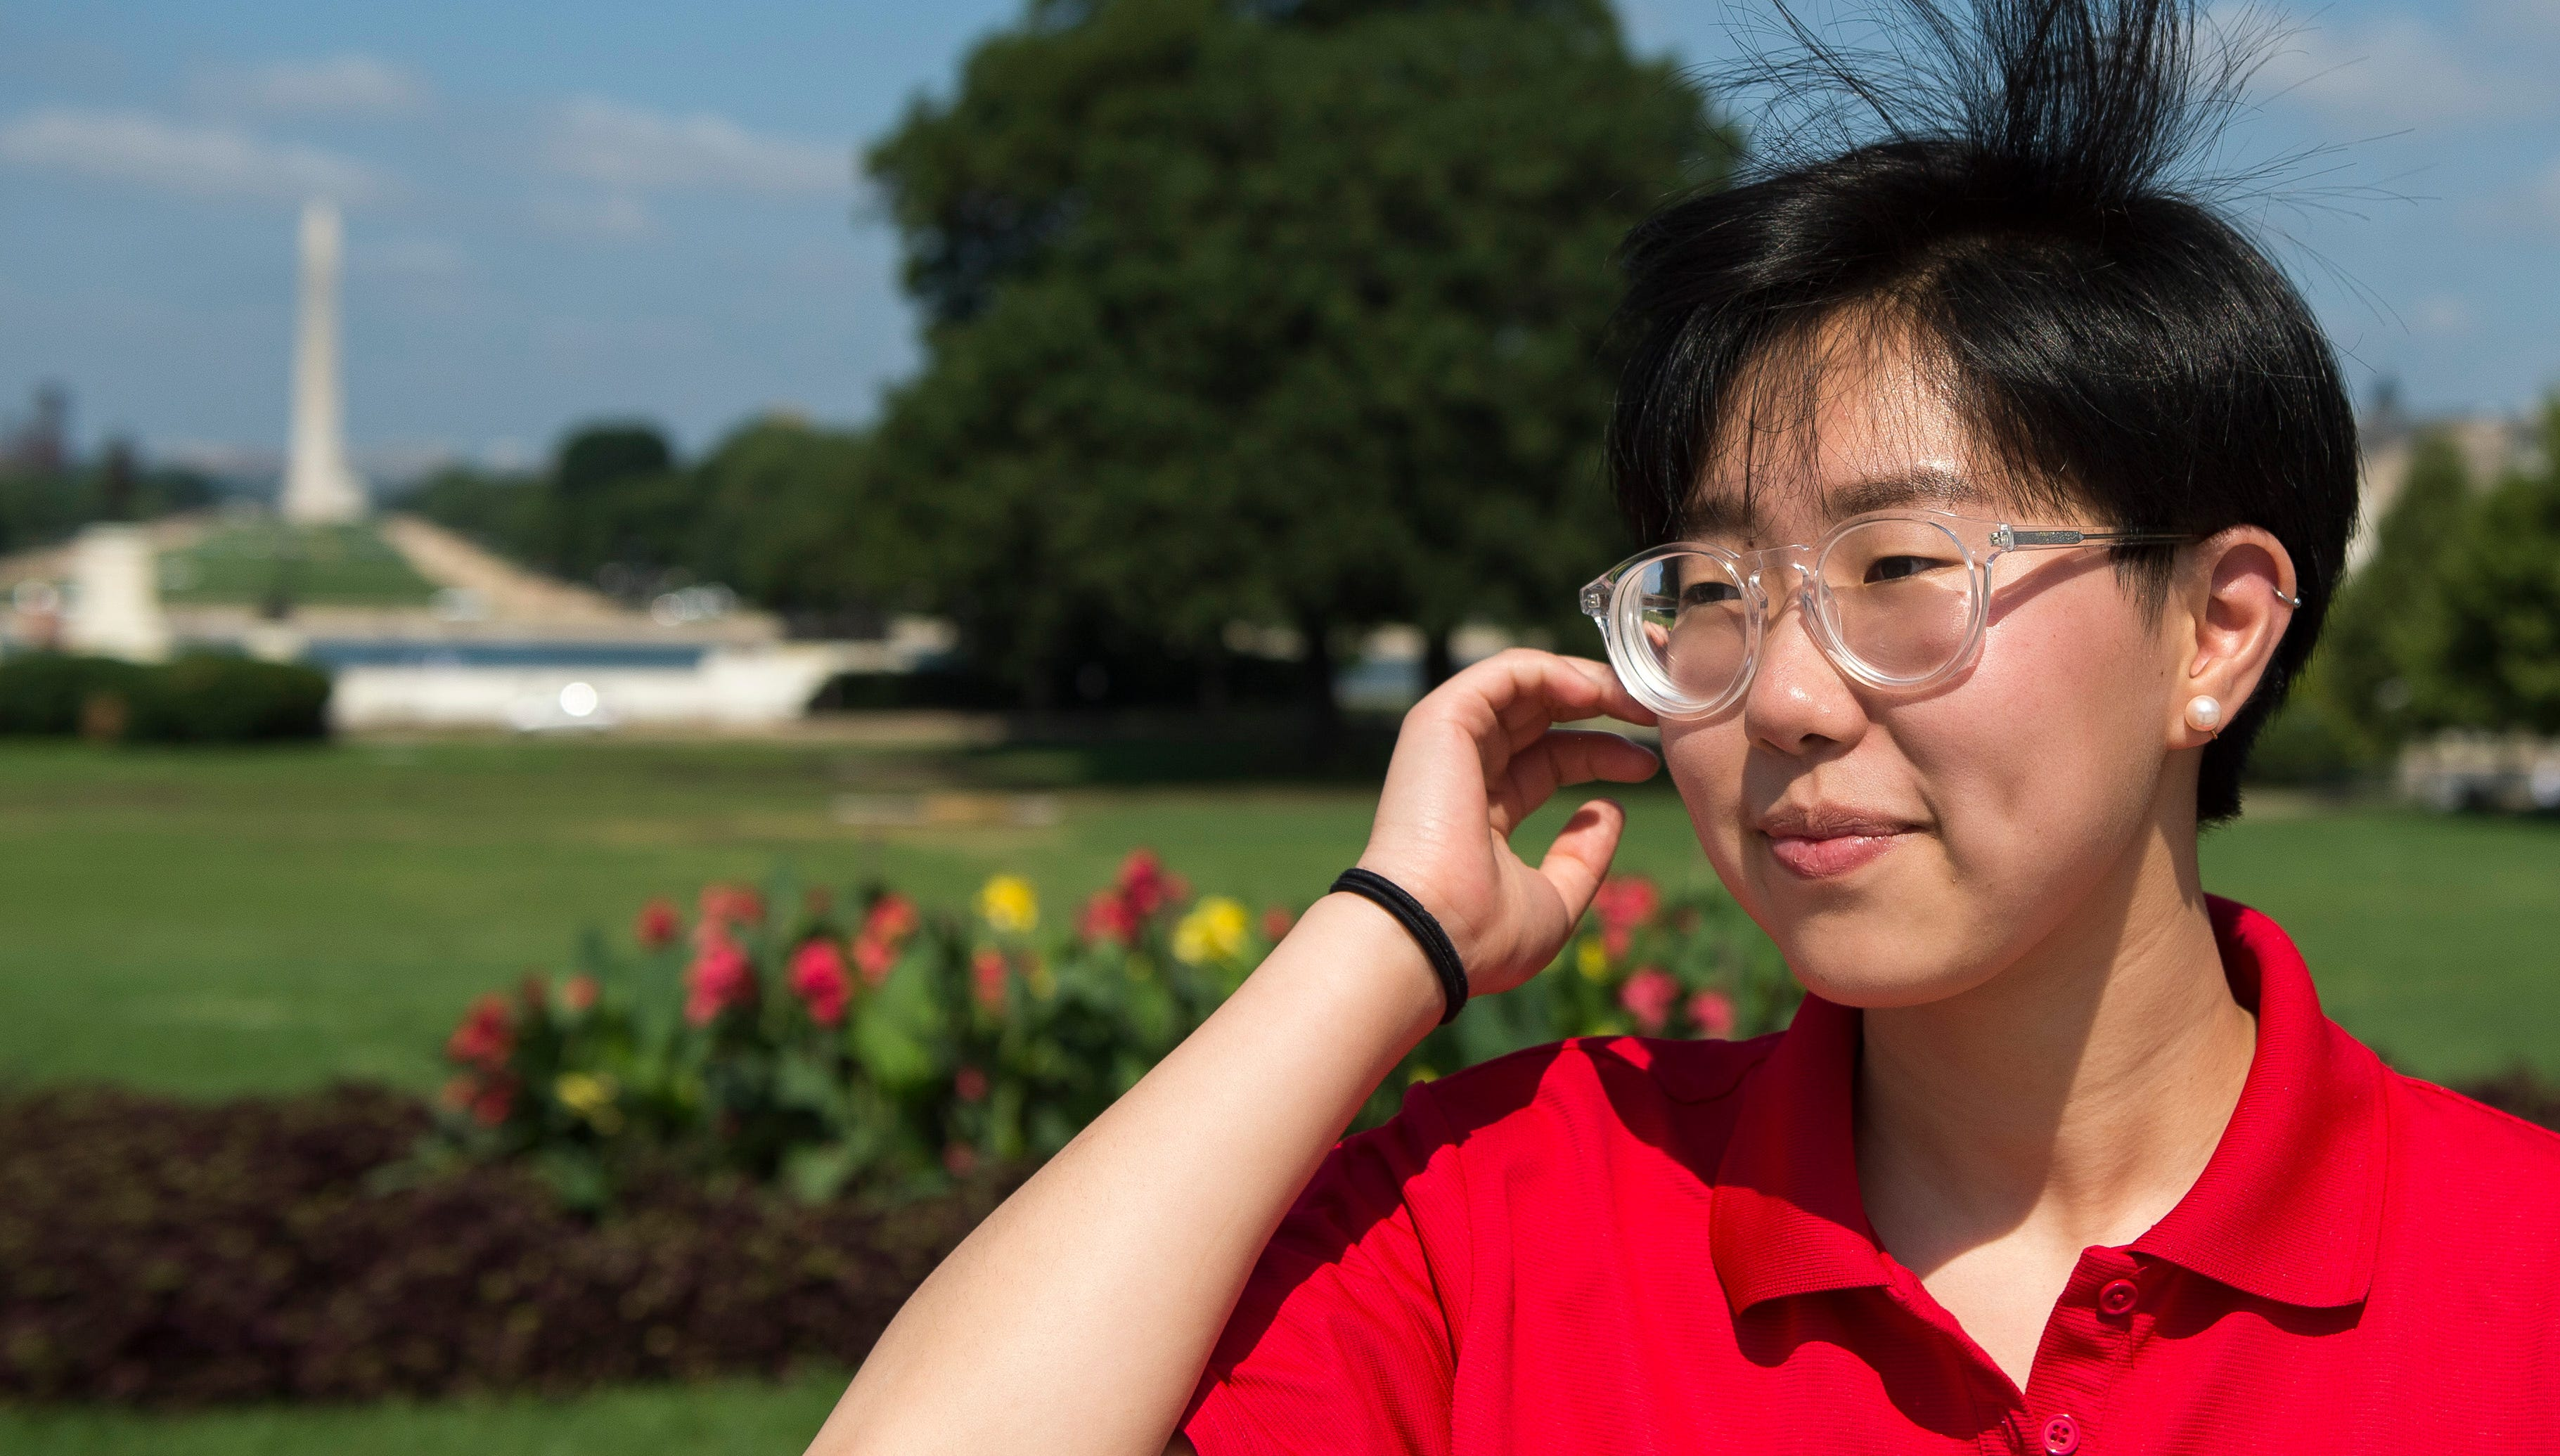 Suzie Cho, 17, from Lincoln, Neb., poses for a portrait in front of the Washington Monument on July 29, 2018.